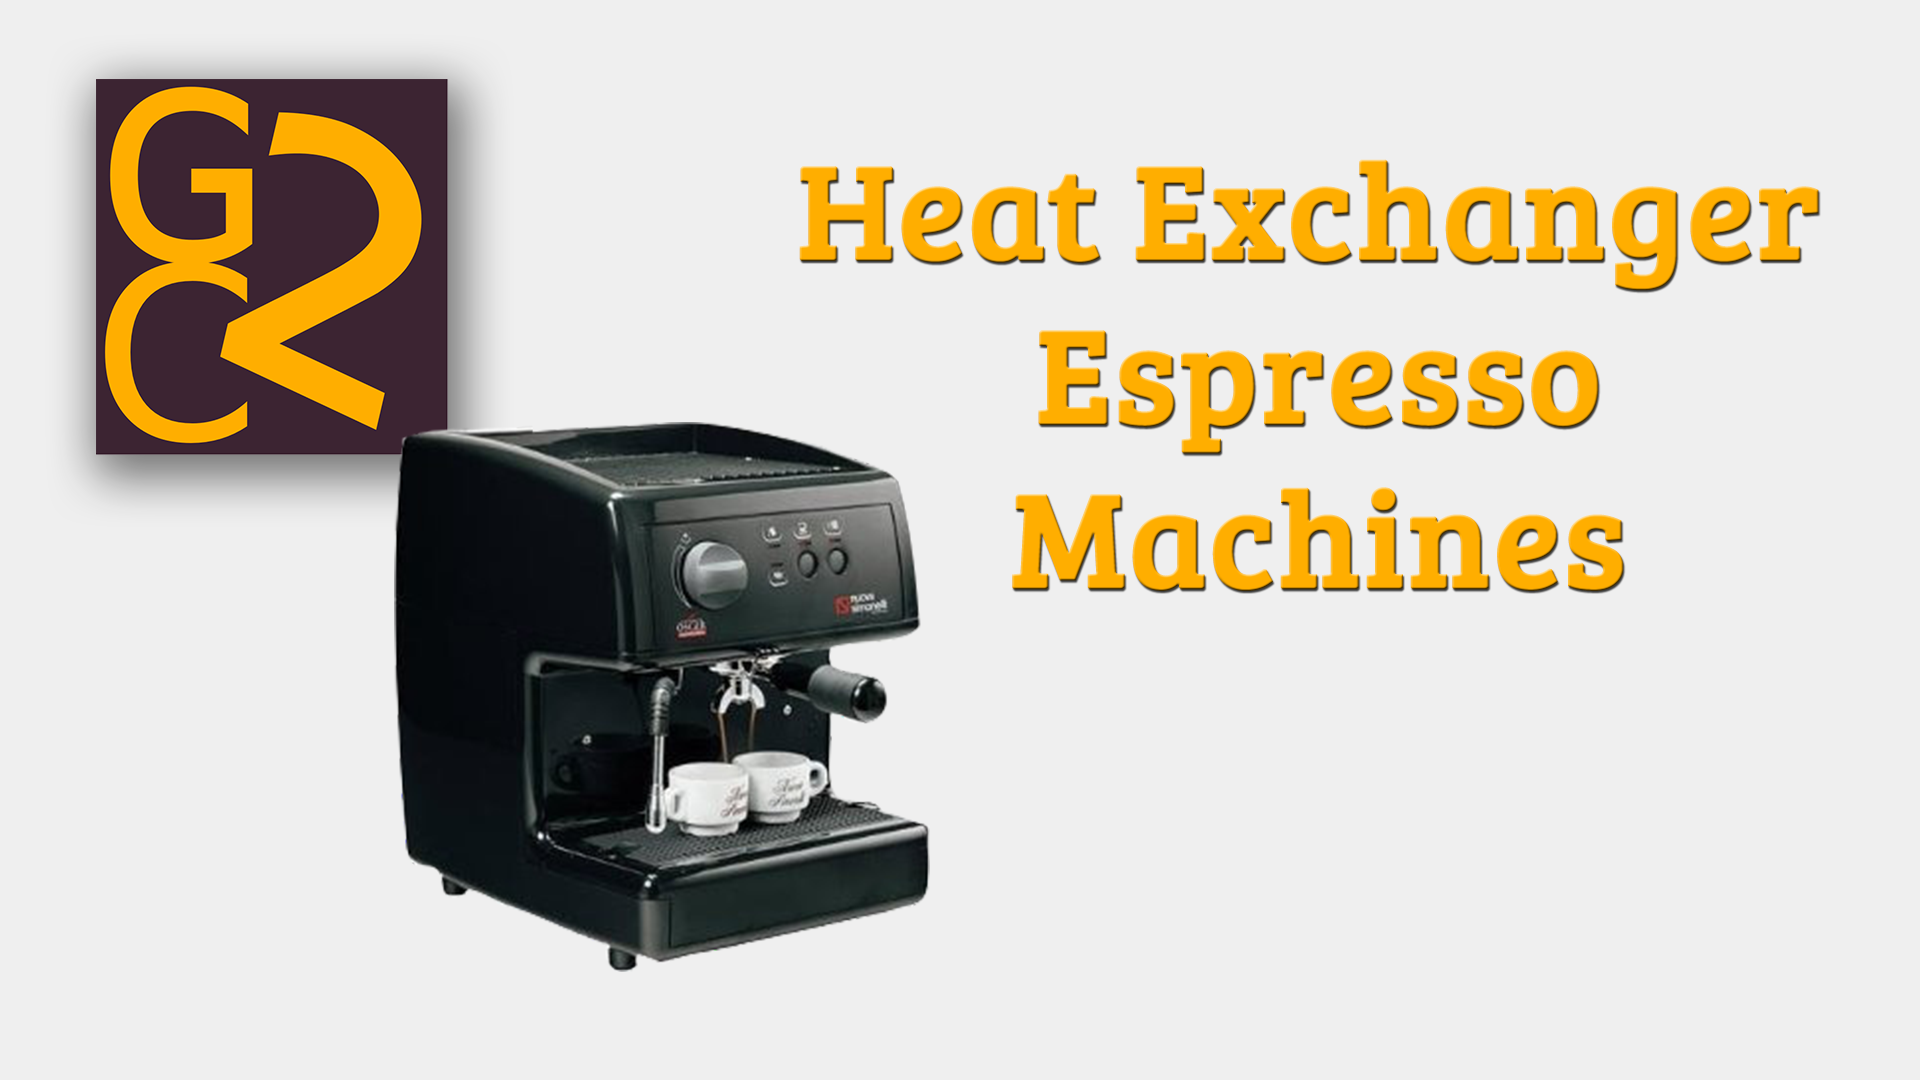 Heat Exchanger Espresso Machines